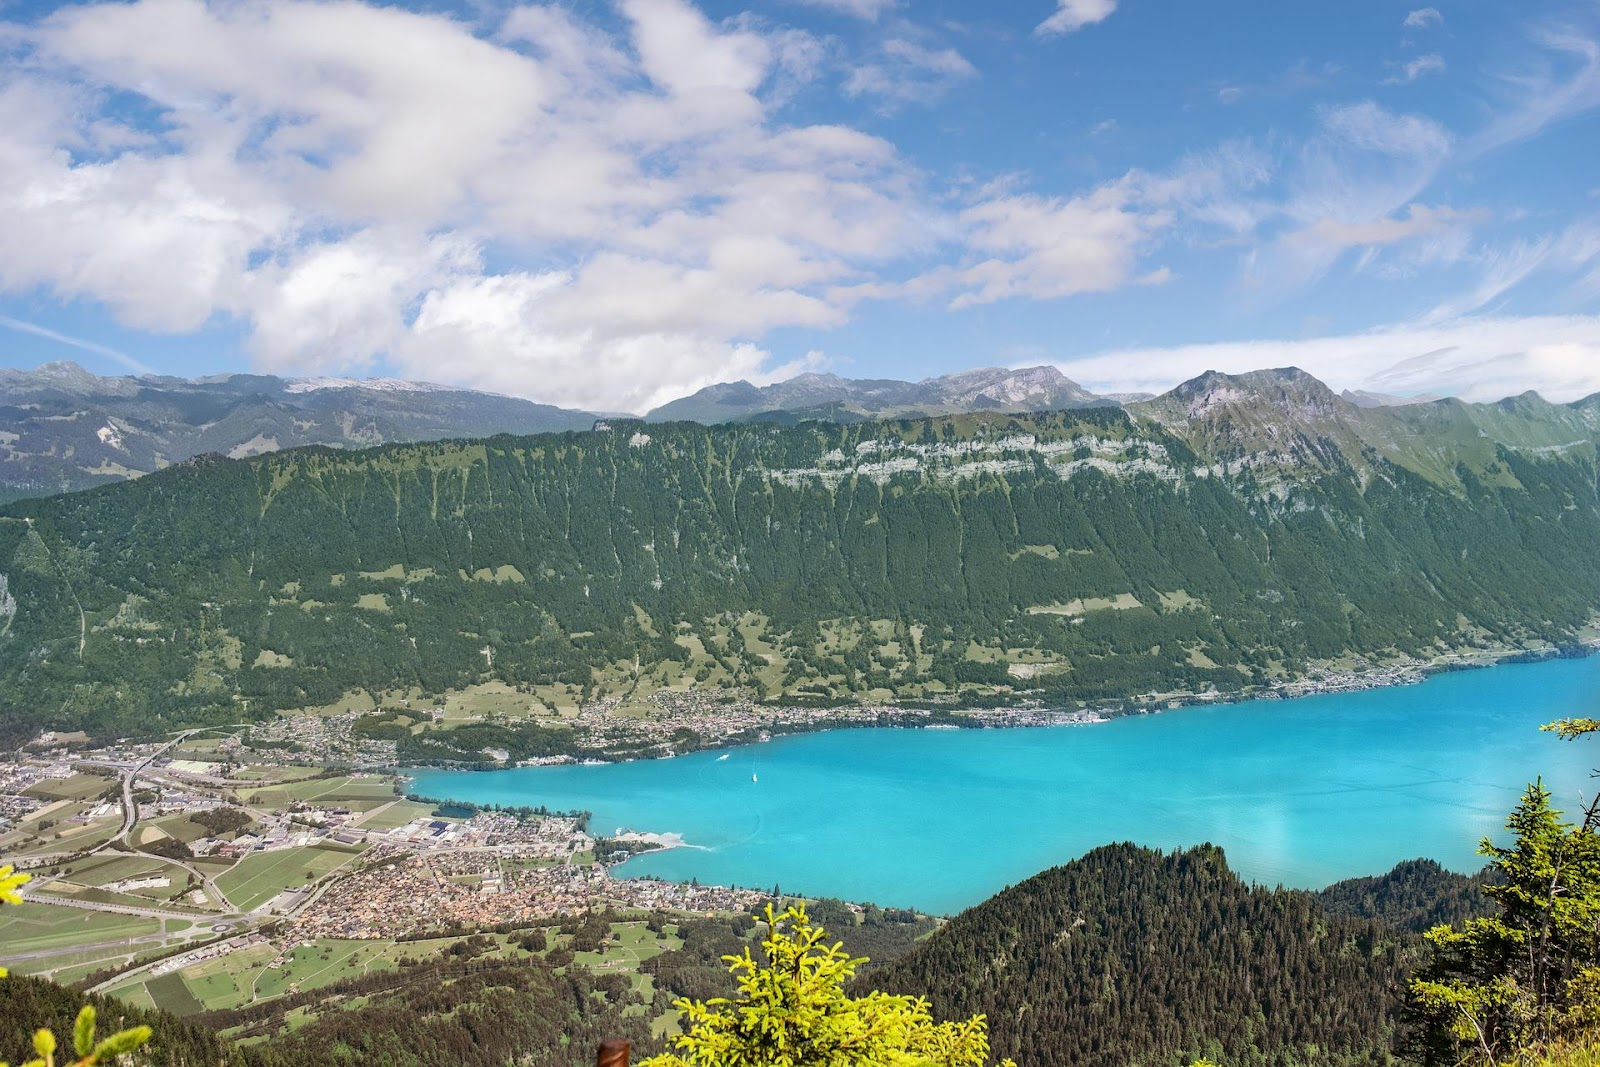 interlaken in the summer seen from above the alps mountains town and blue lake switzerland